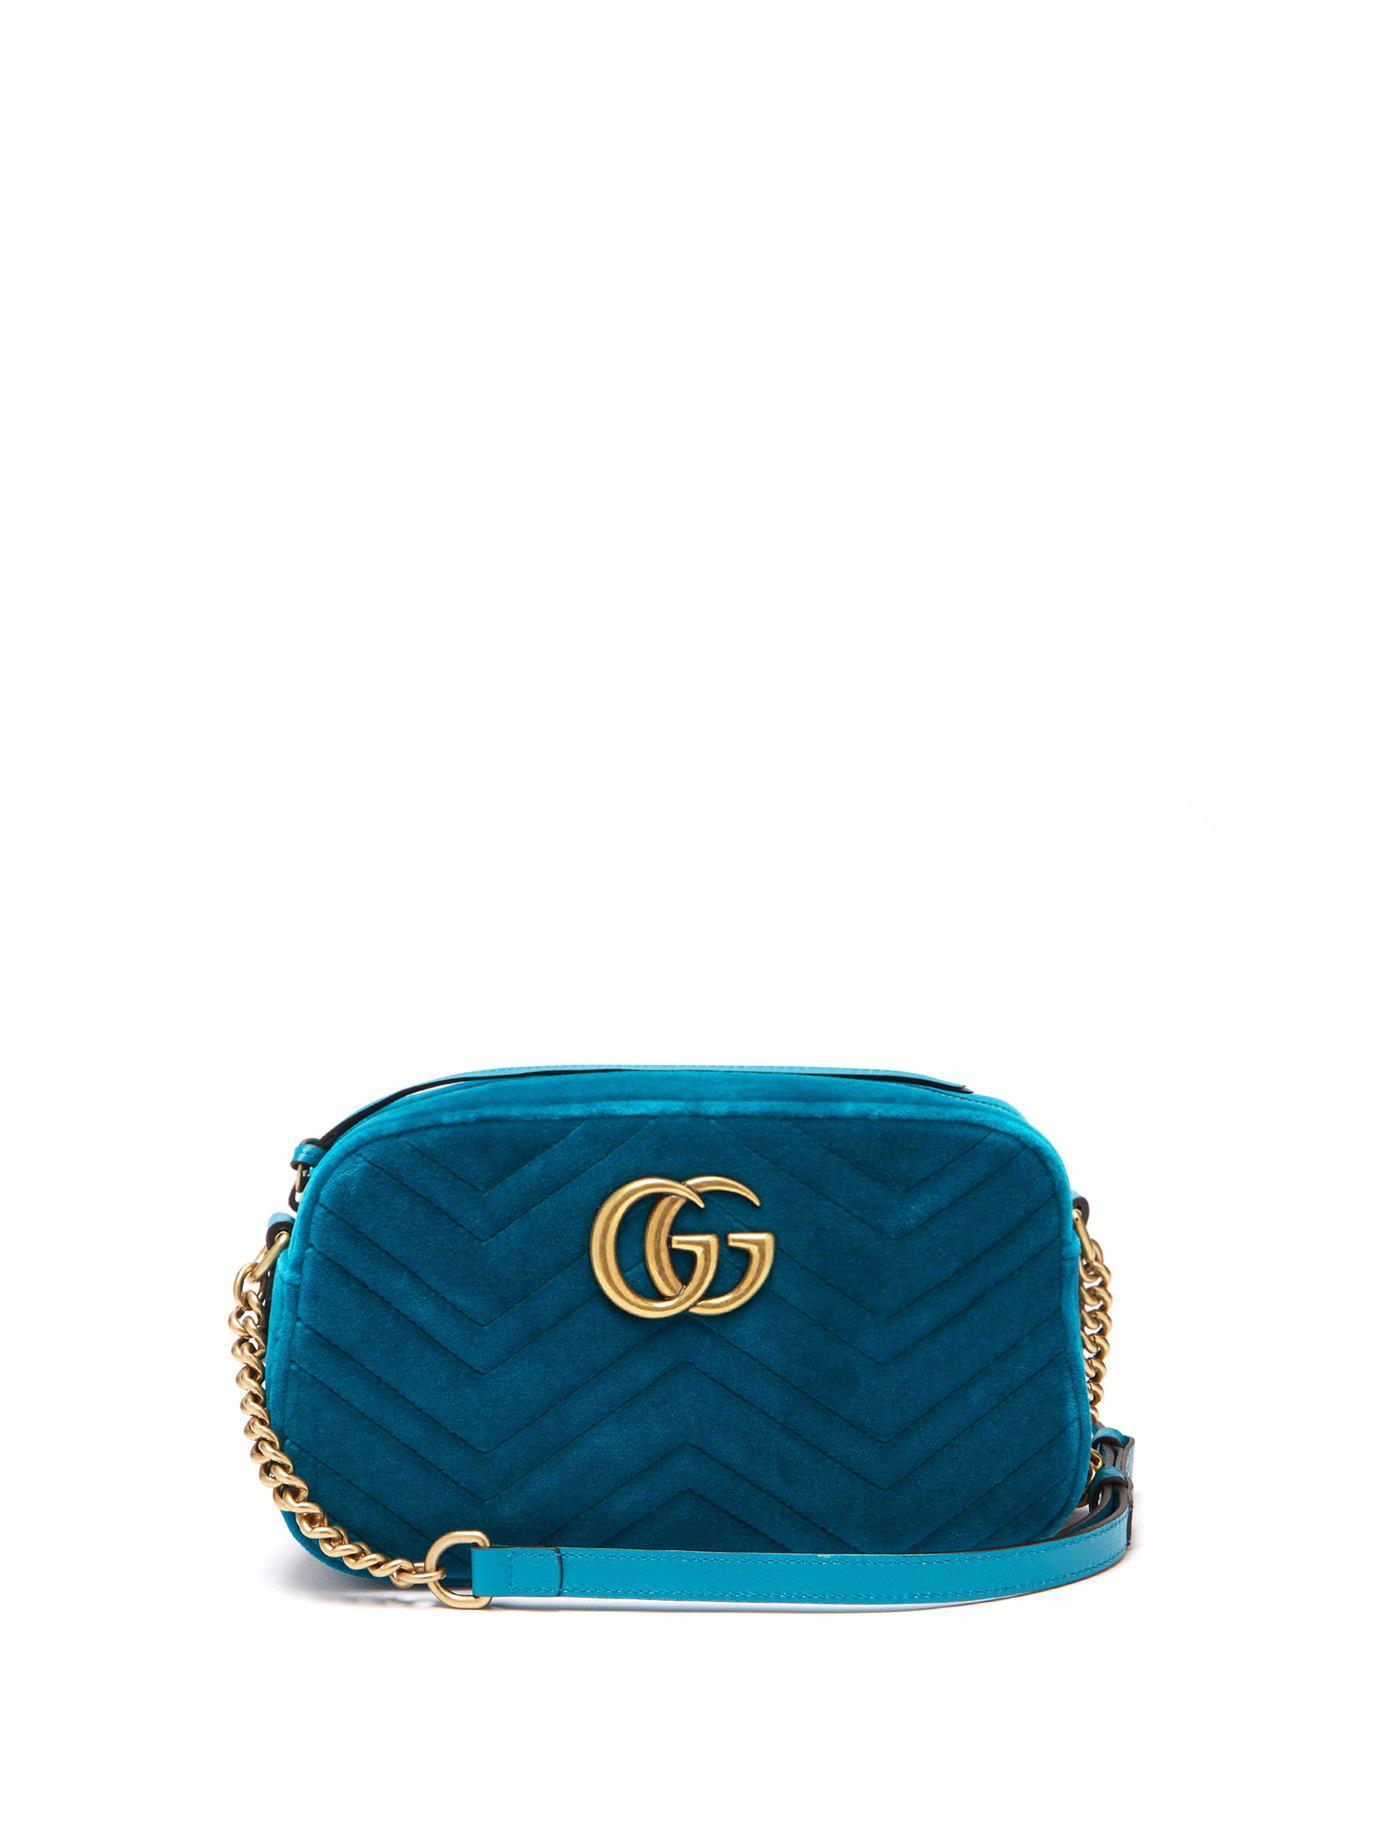 cc03c9dfa61 Lyst - Gucci Gg Marmont Quilted Velvet Cross Body Bag in Green